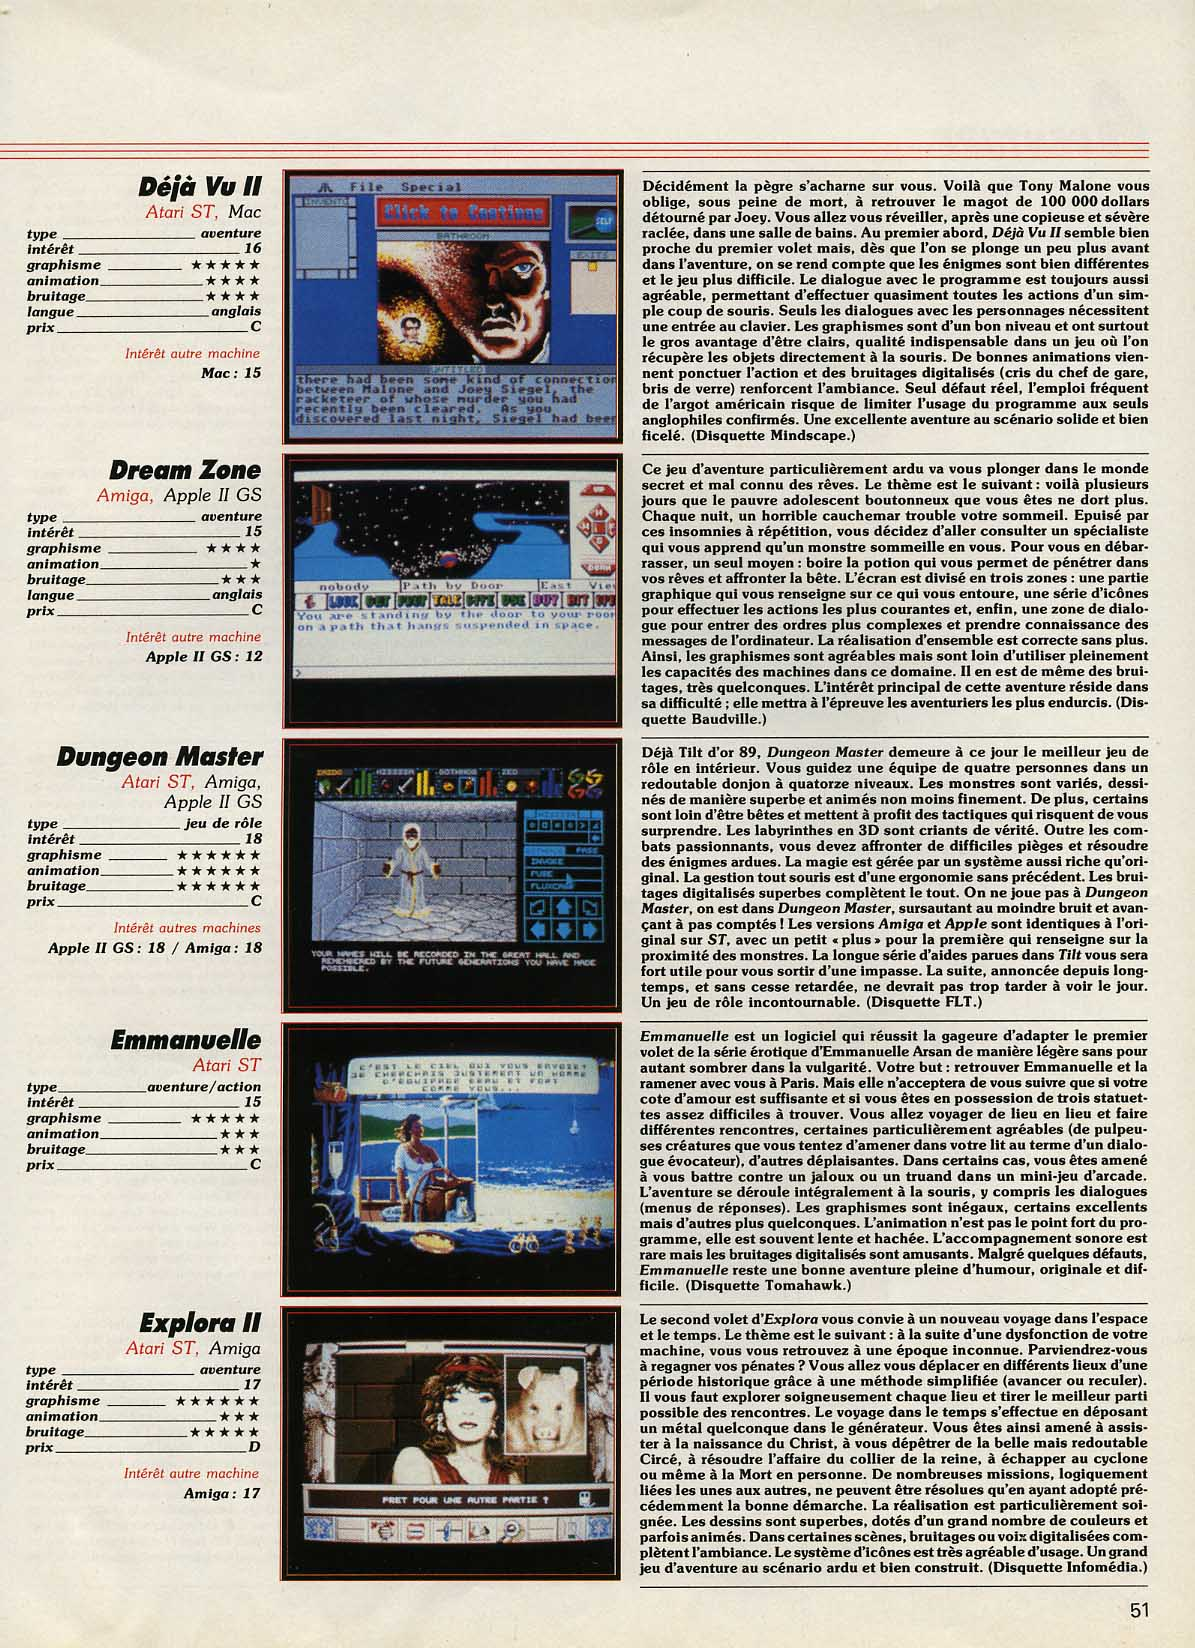 Dungeon Master for Atari ST-Amiga-Apple IIGS Review published in French magazine 'Tilt', Issue #72 November 1989, Page 51